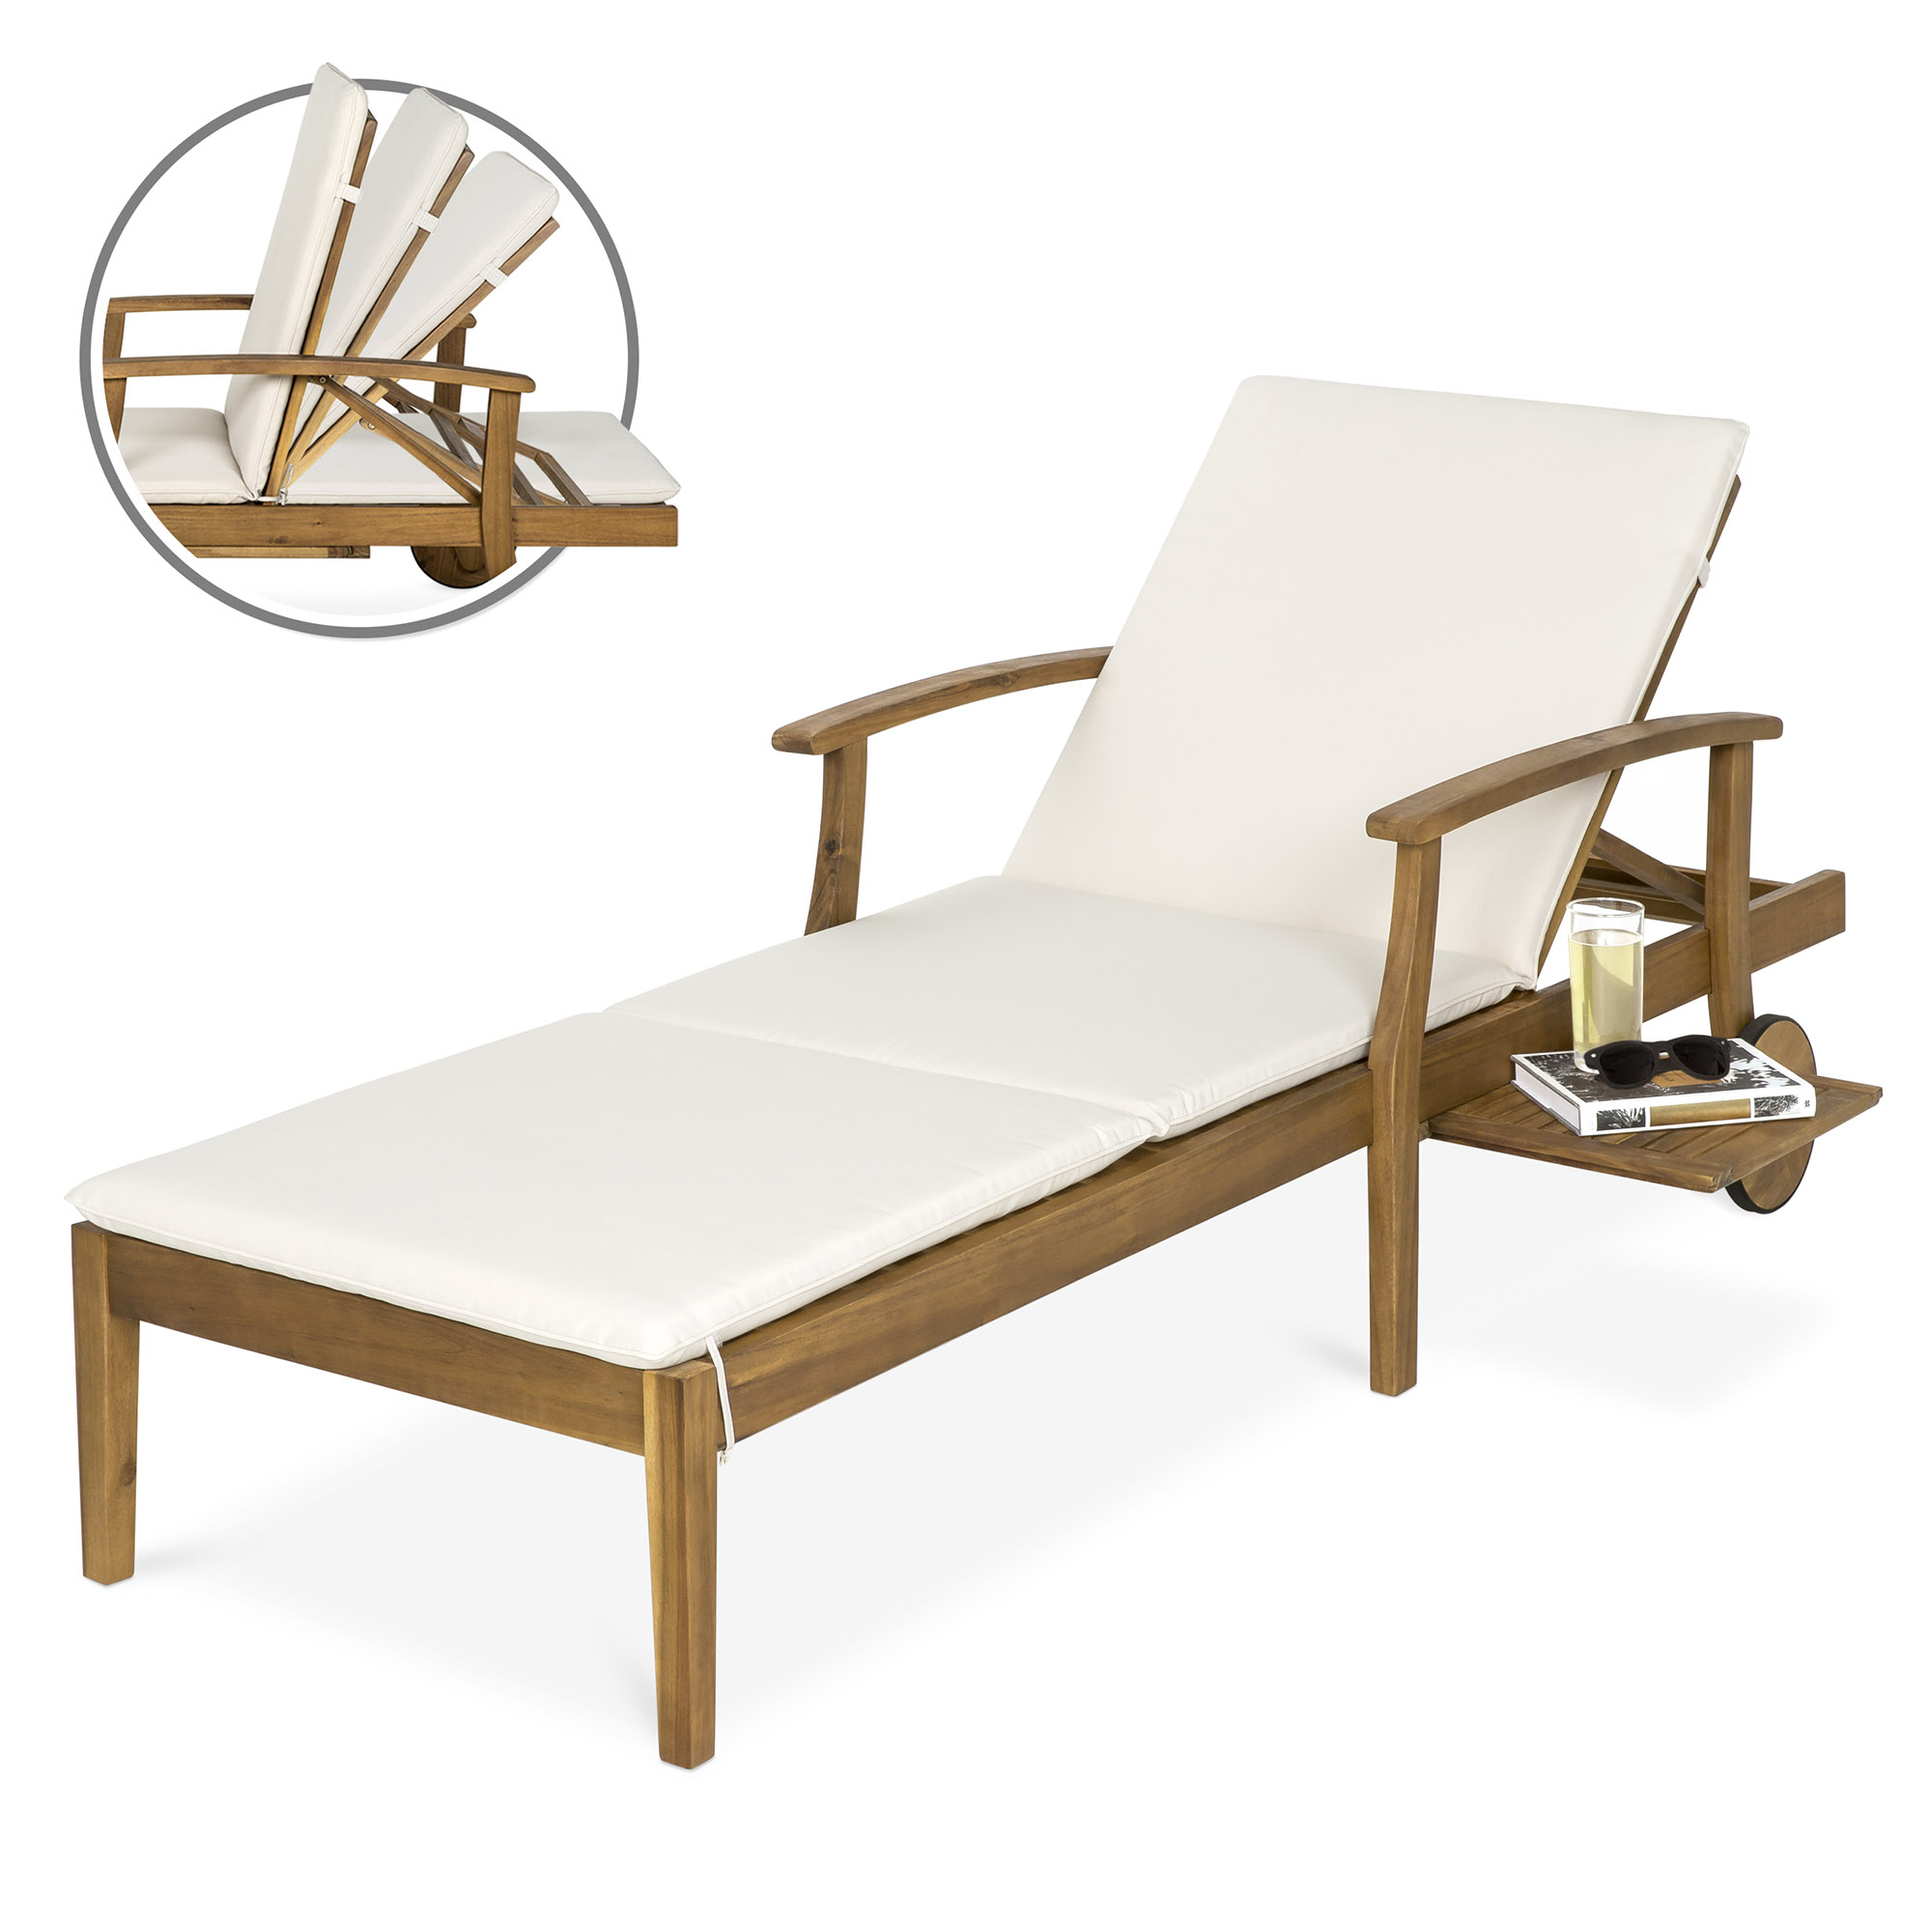 Popular Best Choice Products 79X30In Acacia Wood Outdoor Chaise Lounge Chair W/  Side Table, Adjustable Backrest, Cushion, Wheels Intended For Outdoor Acacia Wood Chaise Lounges And Cushion Sets (Gallery 19 of 25)